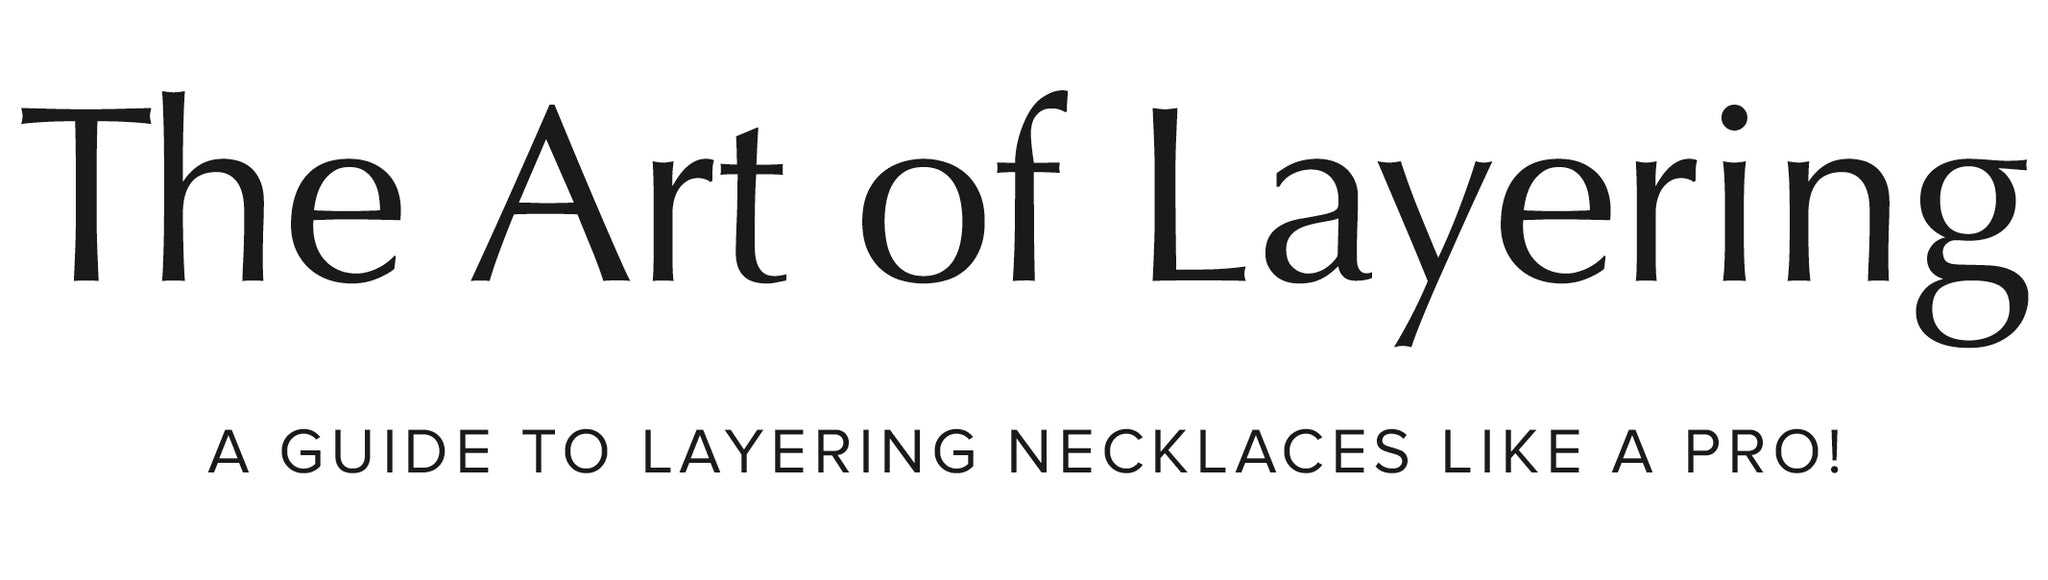 The Art of Layering: A Guide to Layering Necklaces Like a Pro